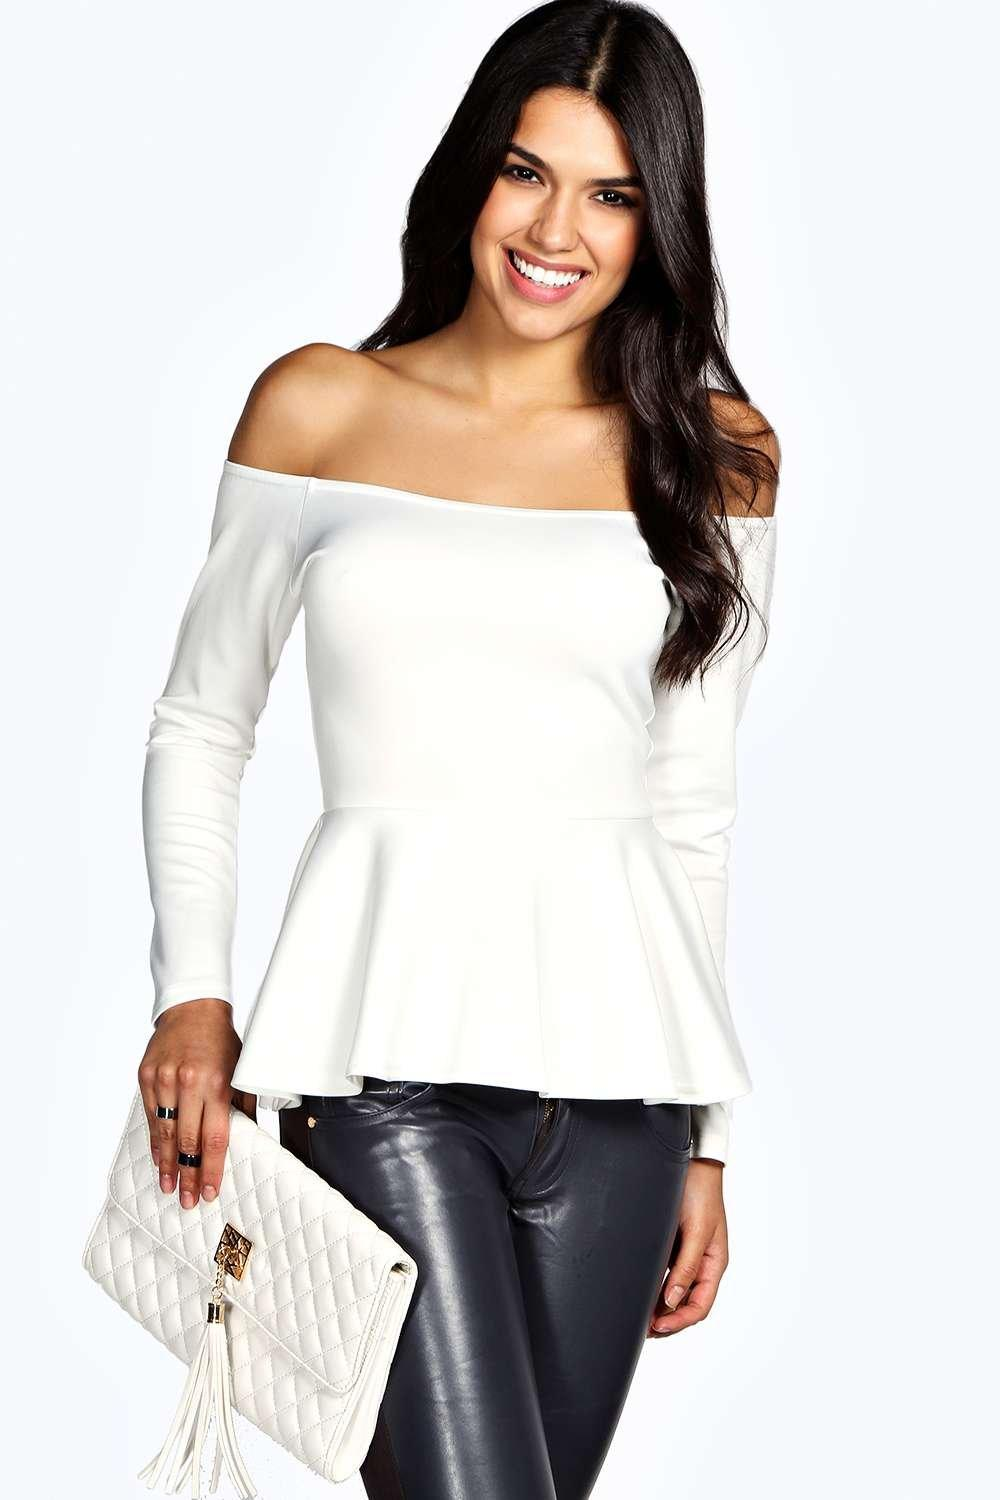 Women's Off-Shoulder Tops and Blouses From flowing to form-fitting, off-shoulder tanks, camis, or blouses for women are the new go-to style for teens and women alike. Show off one shoulder or two; the choice is up to you.